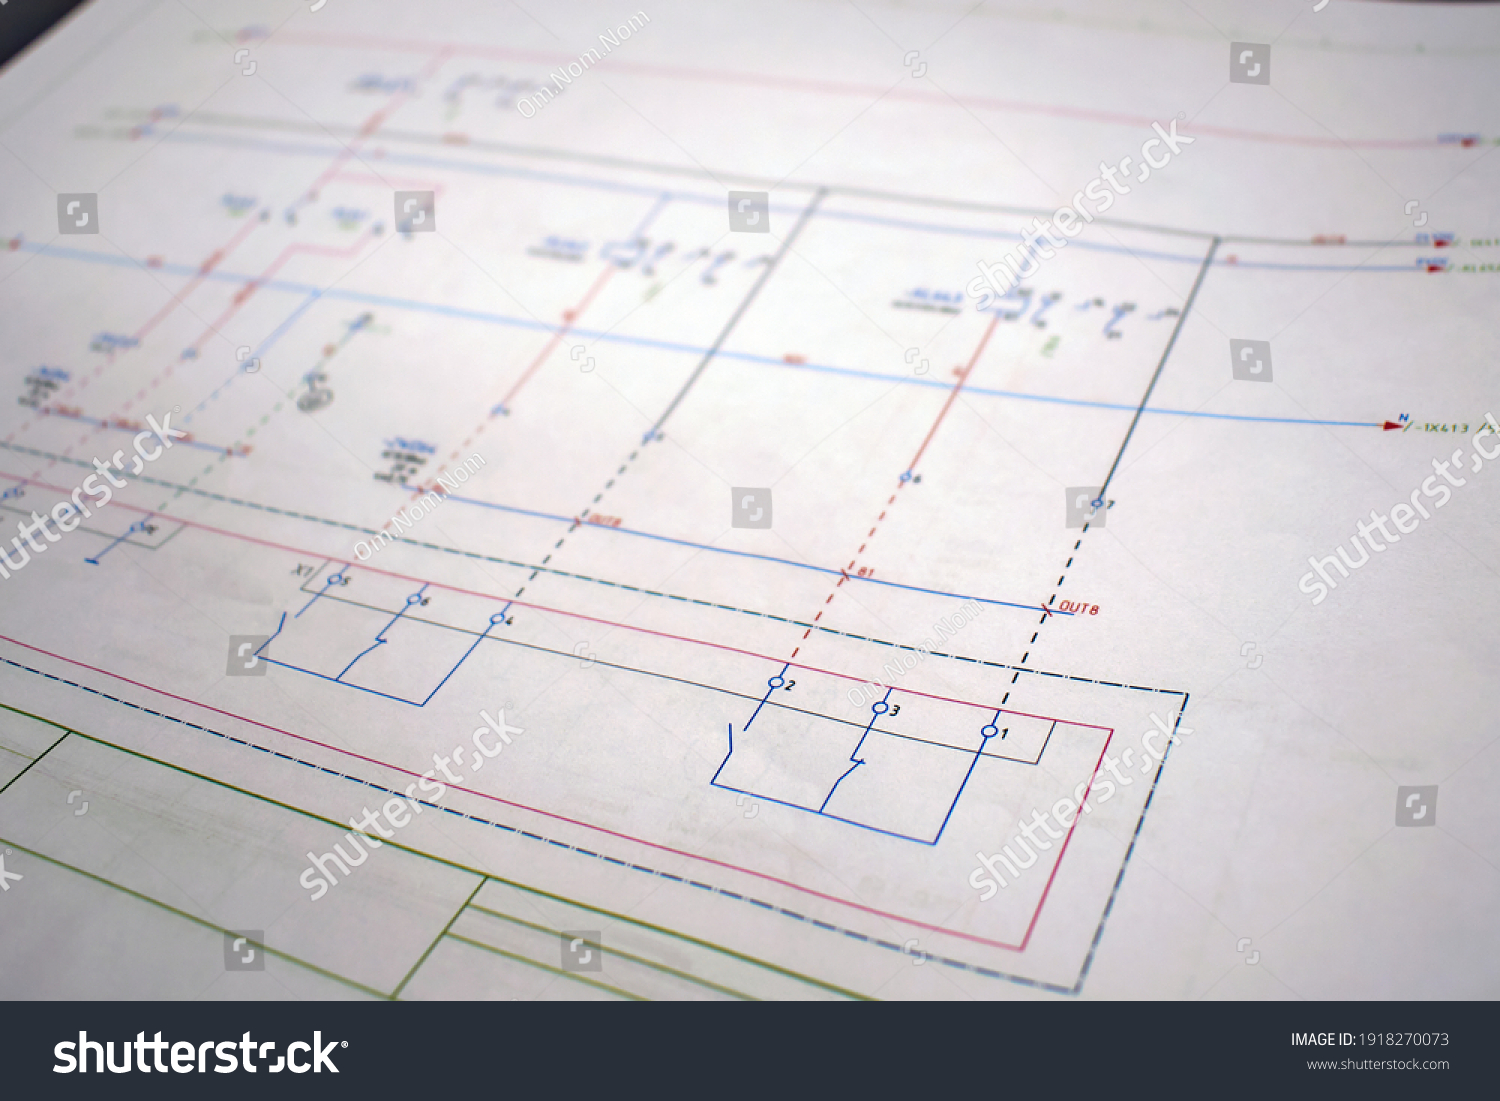 Printed electrical diagram. Electrical equipment connection diagram, technological design #1918270073